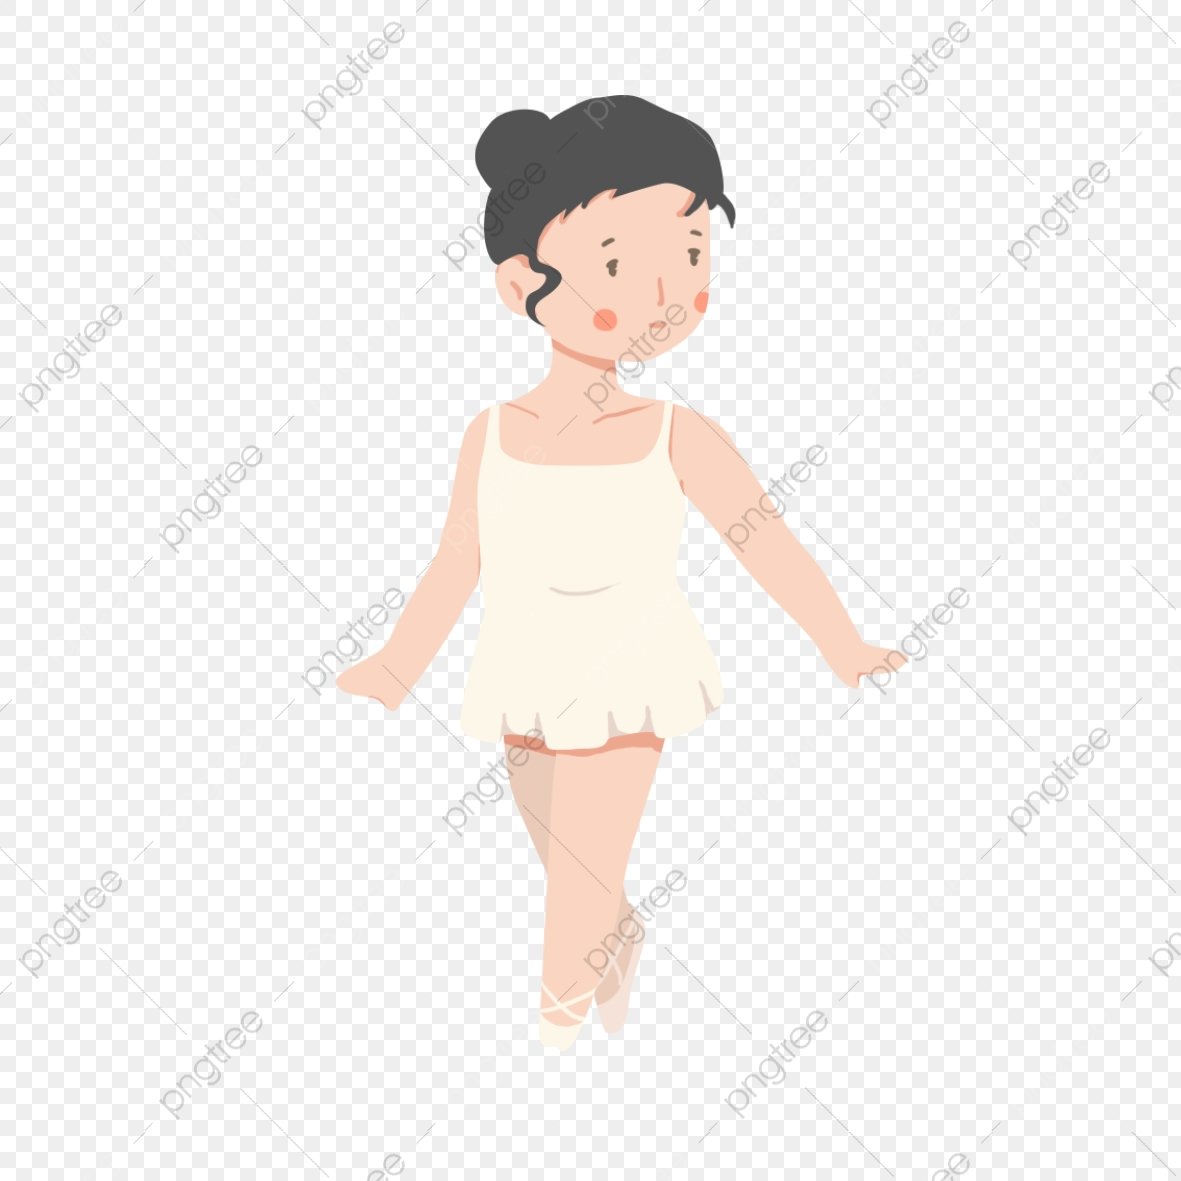 Hand Drawn Cartoon Learning Dance Lessons White Ballet Skirt Cartoon Character Dancing And Dancing Go On Stage Elegant Png Transparent Clipart Image And Psd File For Free Download